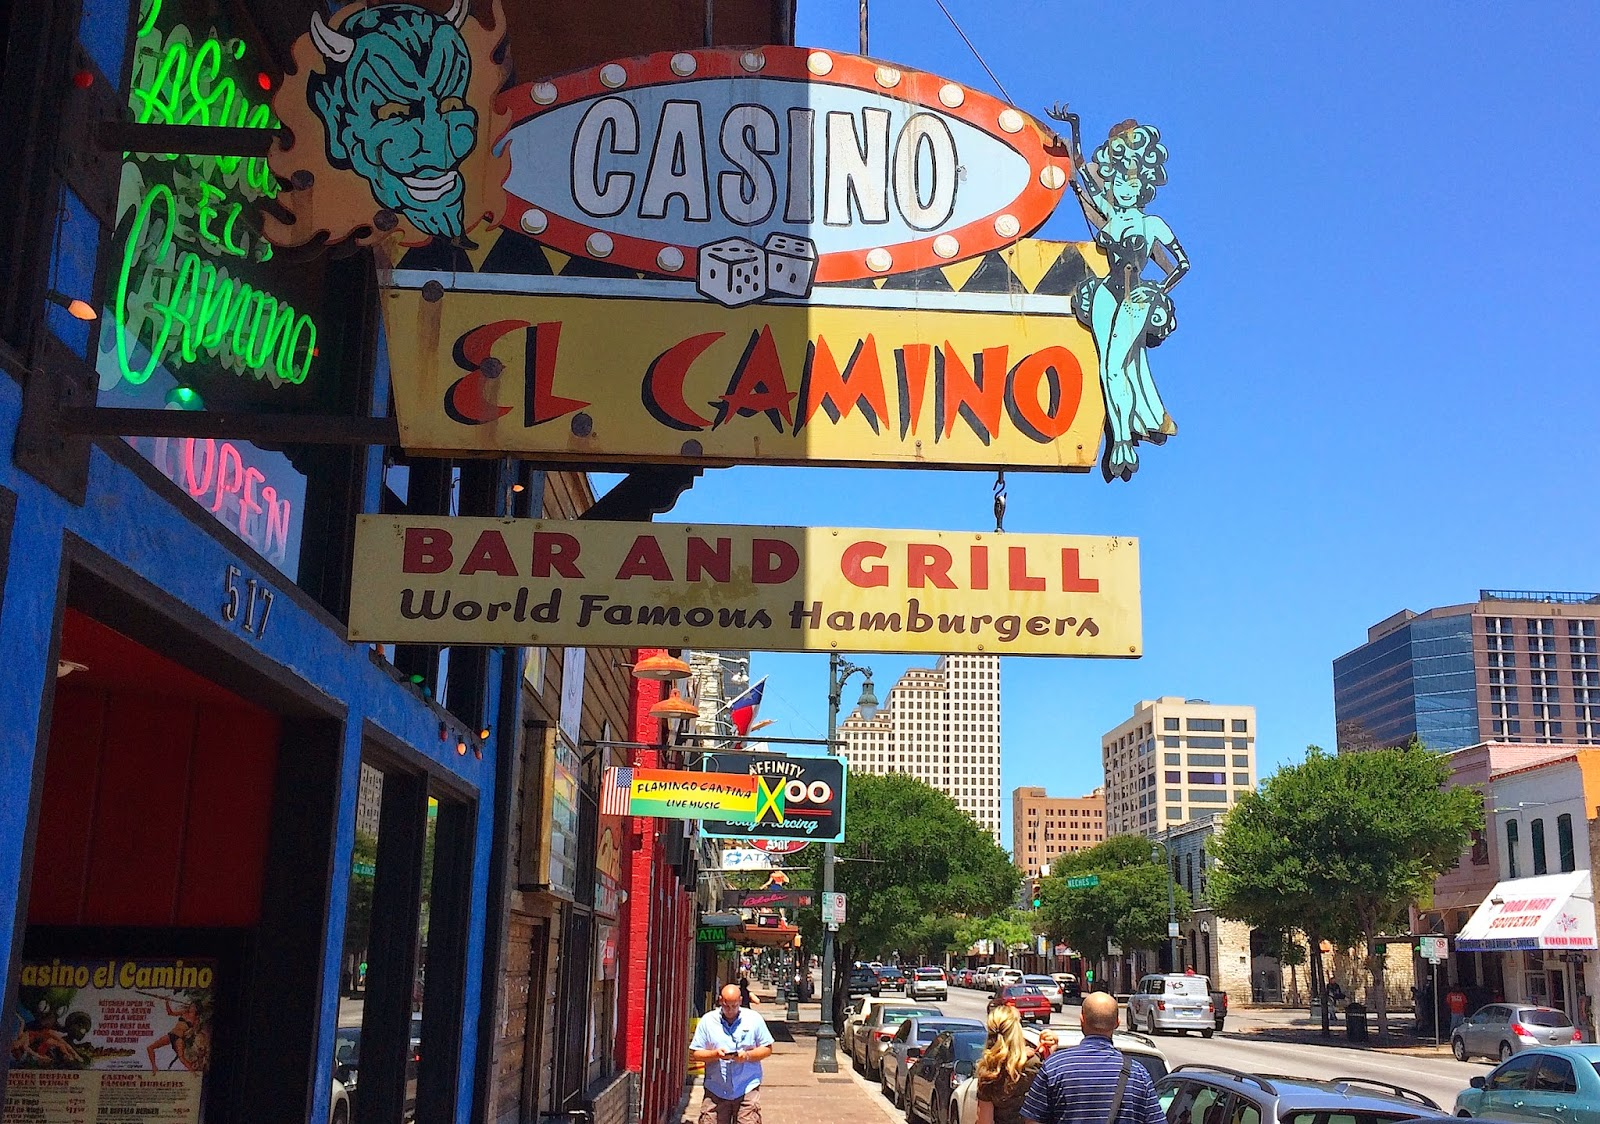 Casino el camino in austin texas